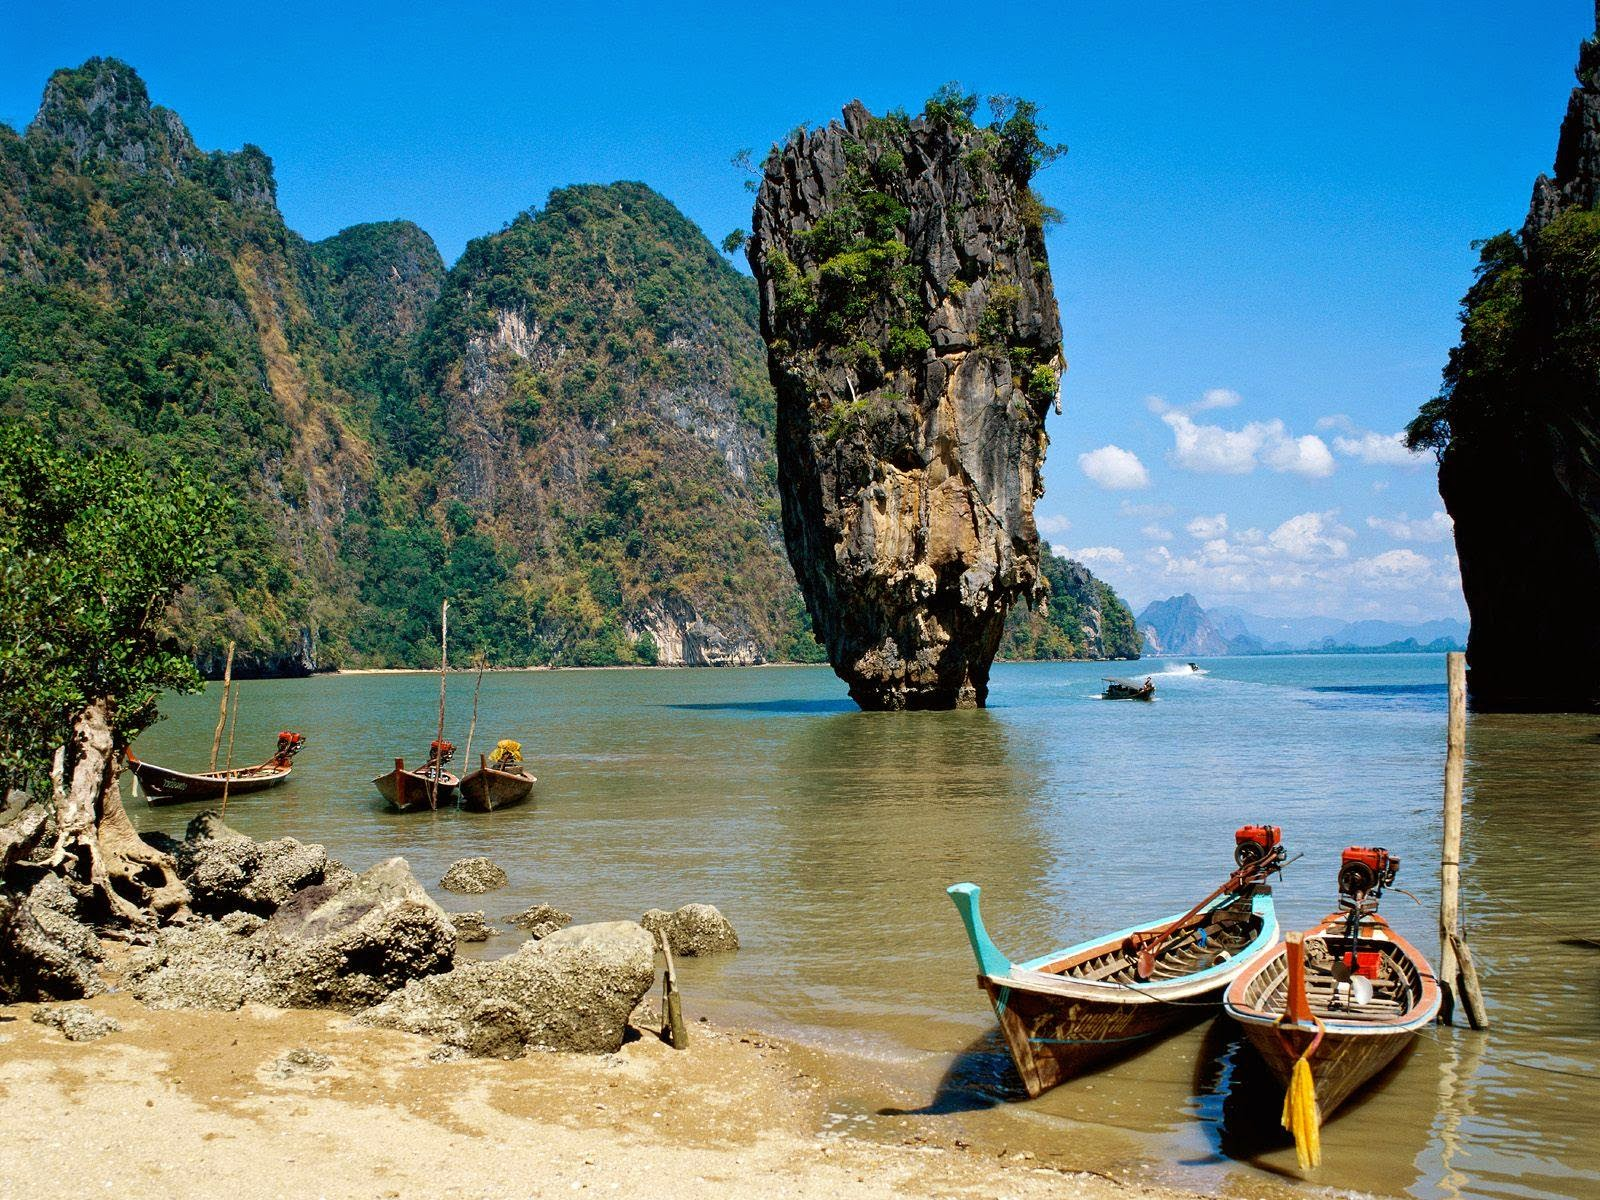 thailand | 10 best places to visit | global touristry